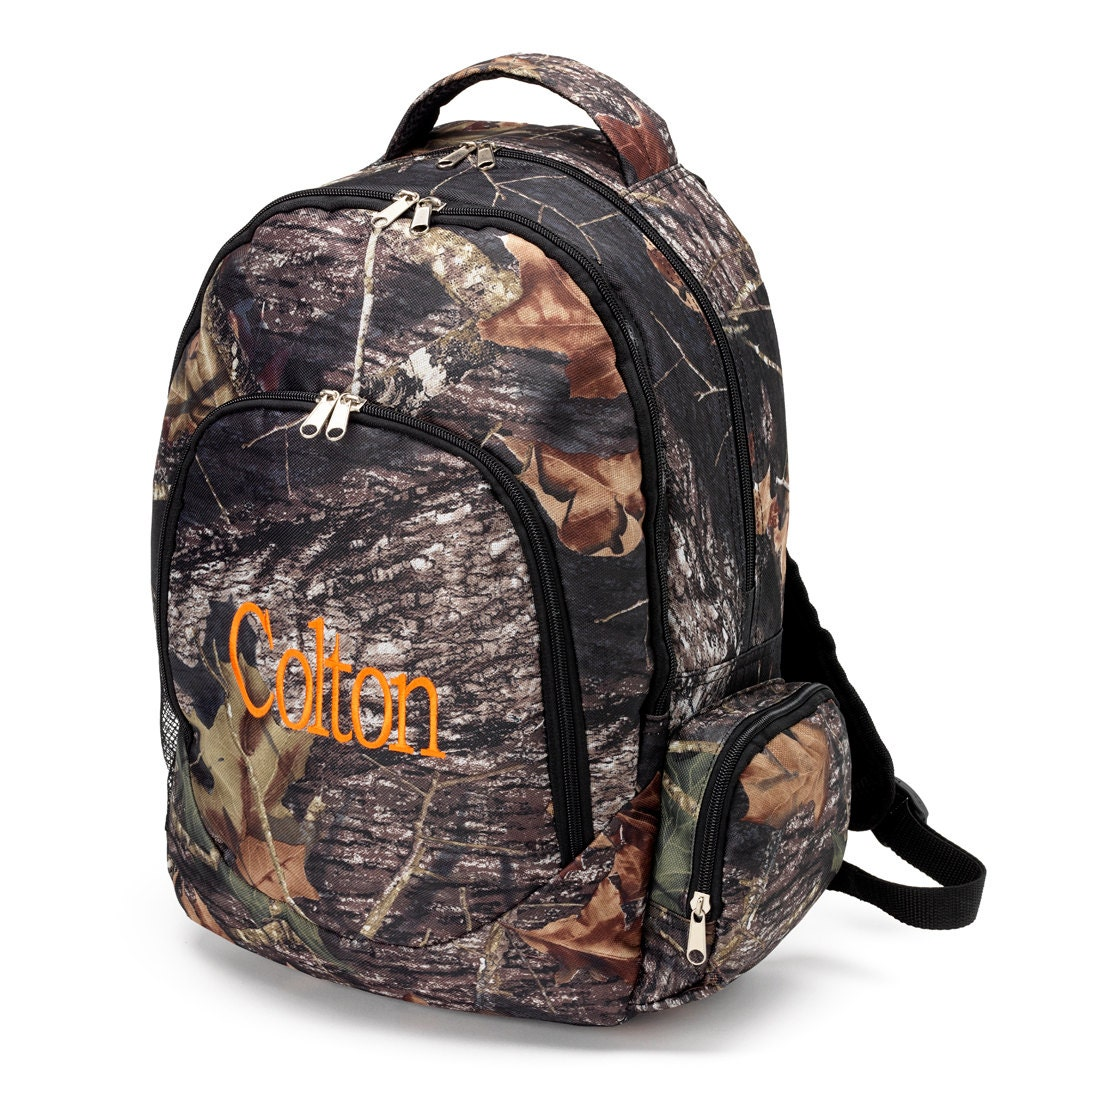 Camo Backpacks For Kids | Crazy Backpacks